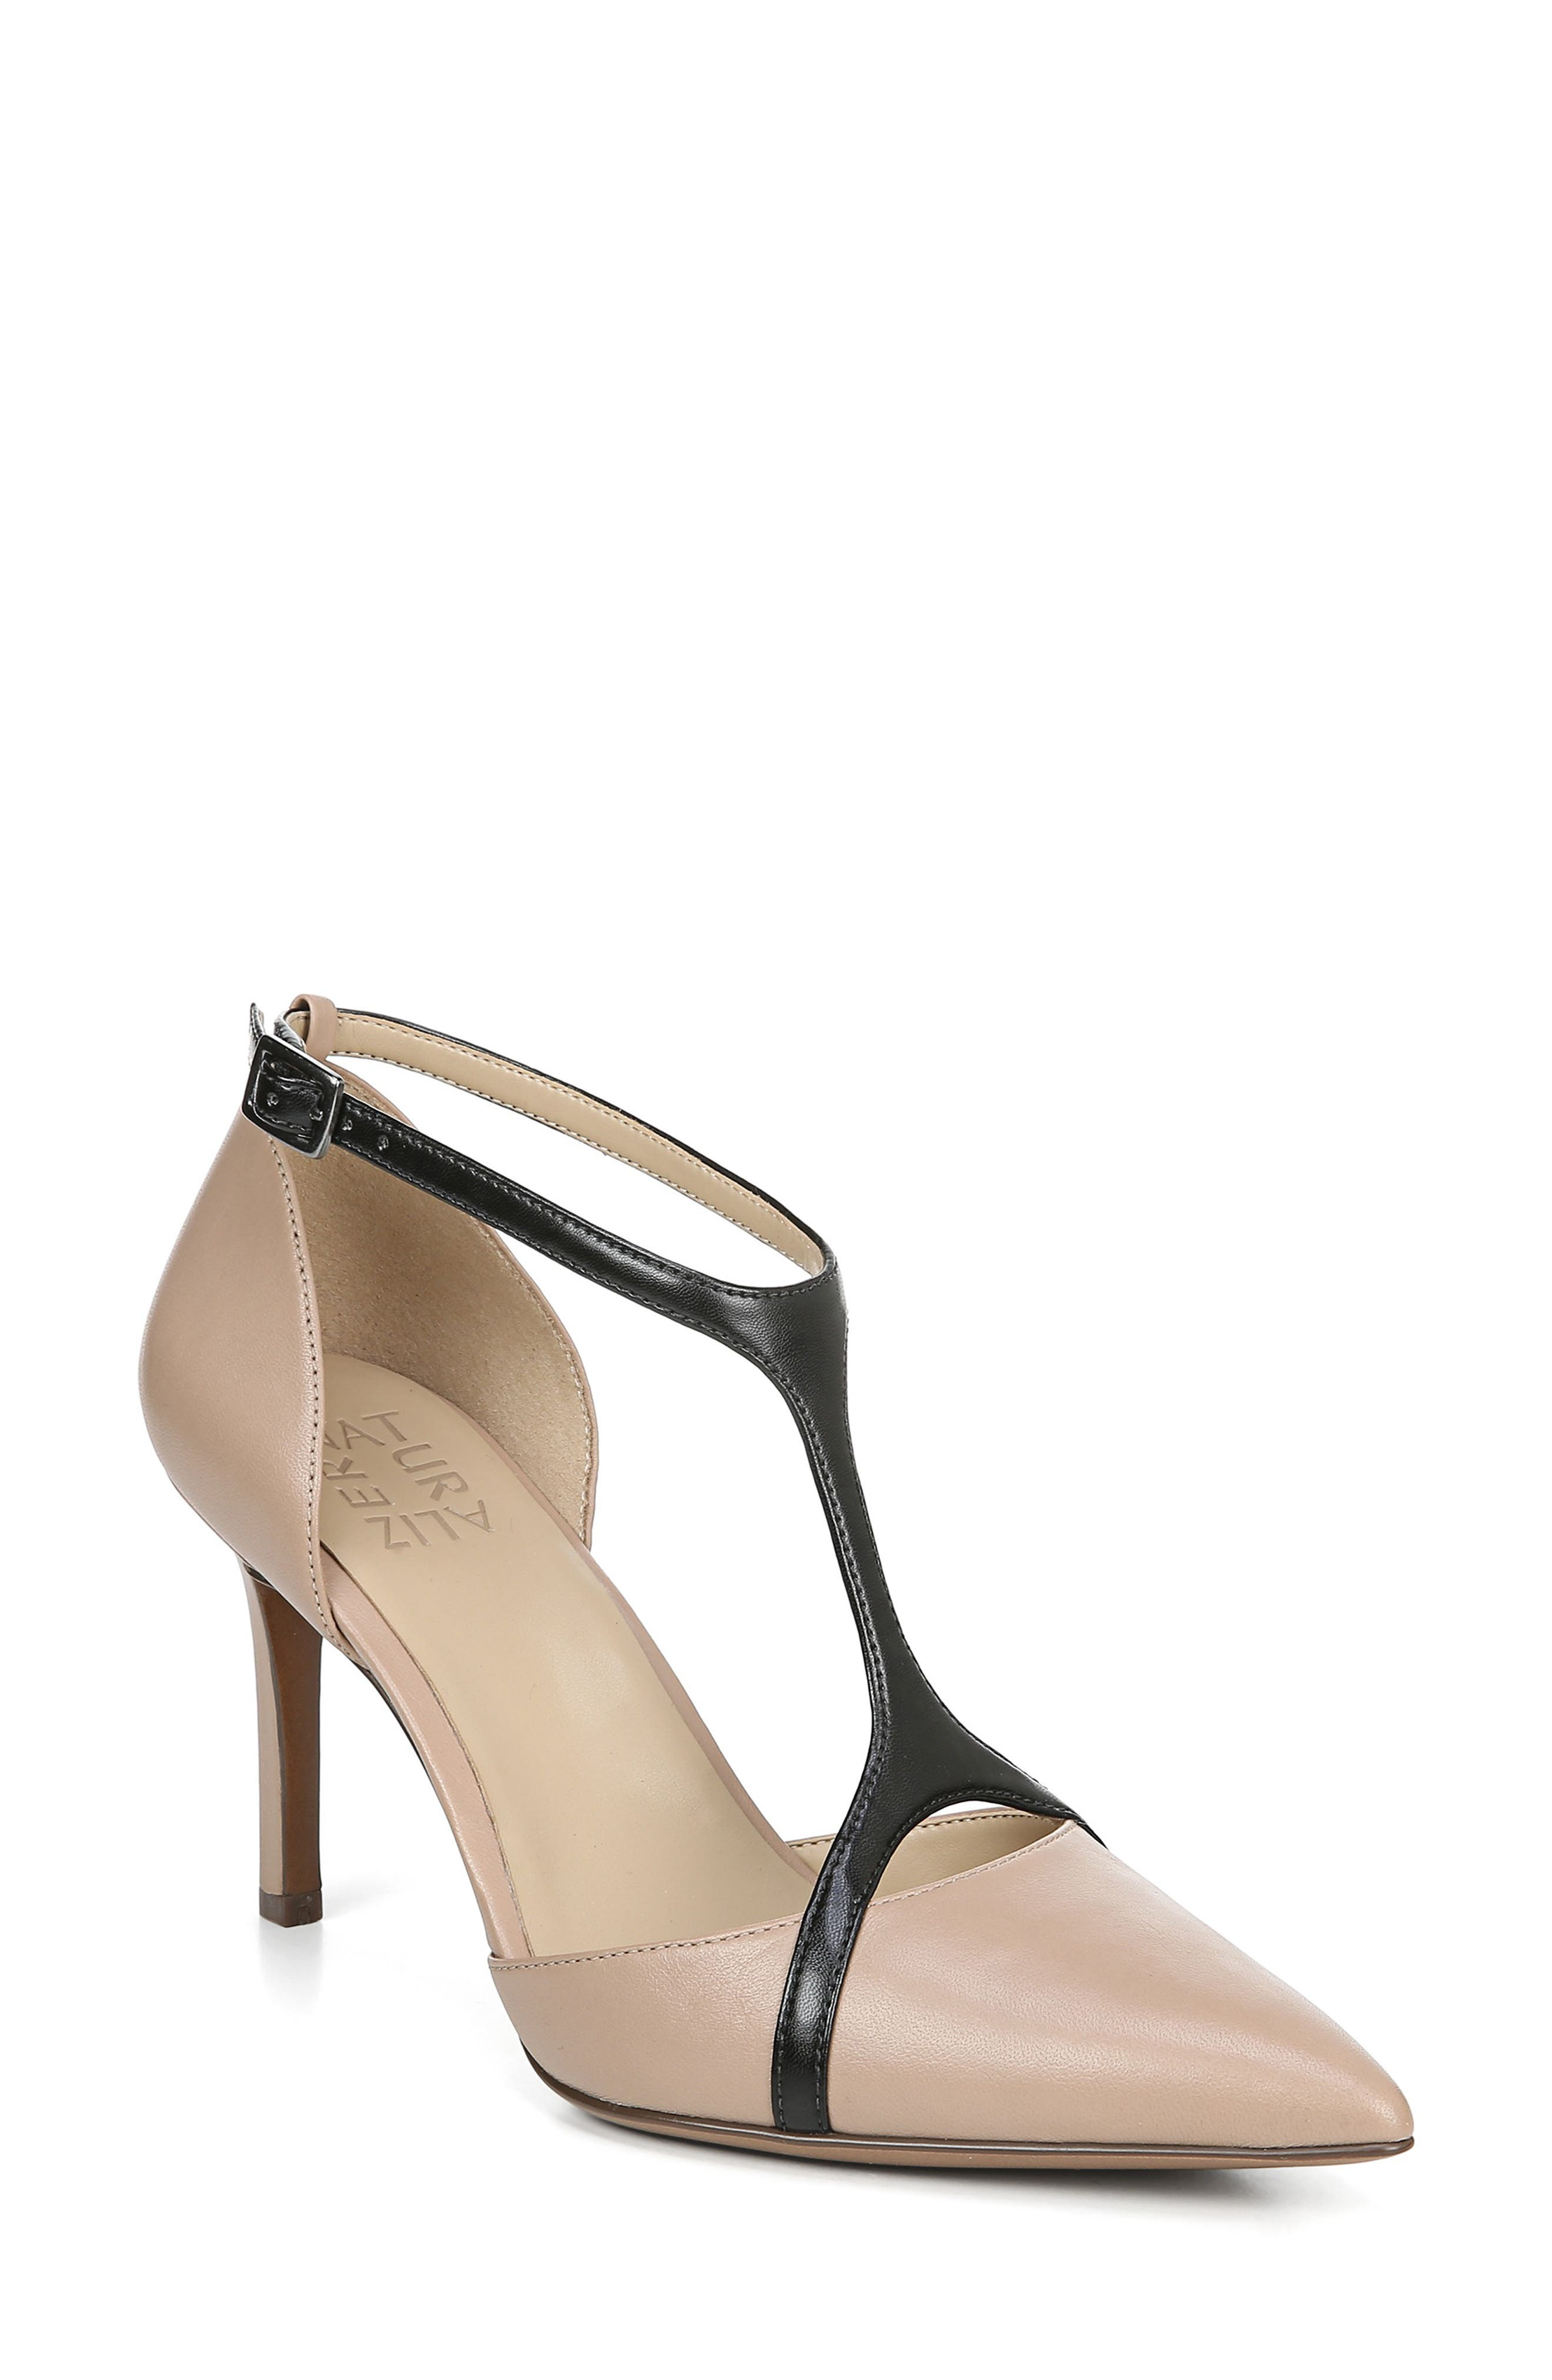 Naturalizer Andrea Pump, Beige